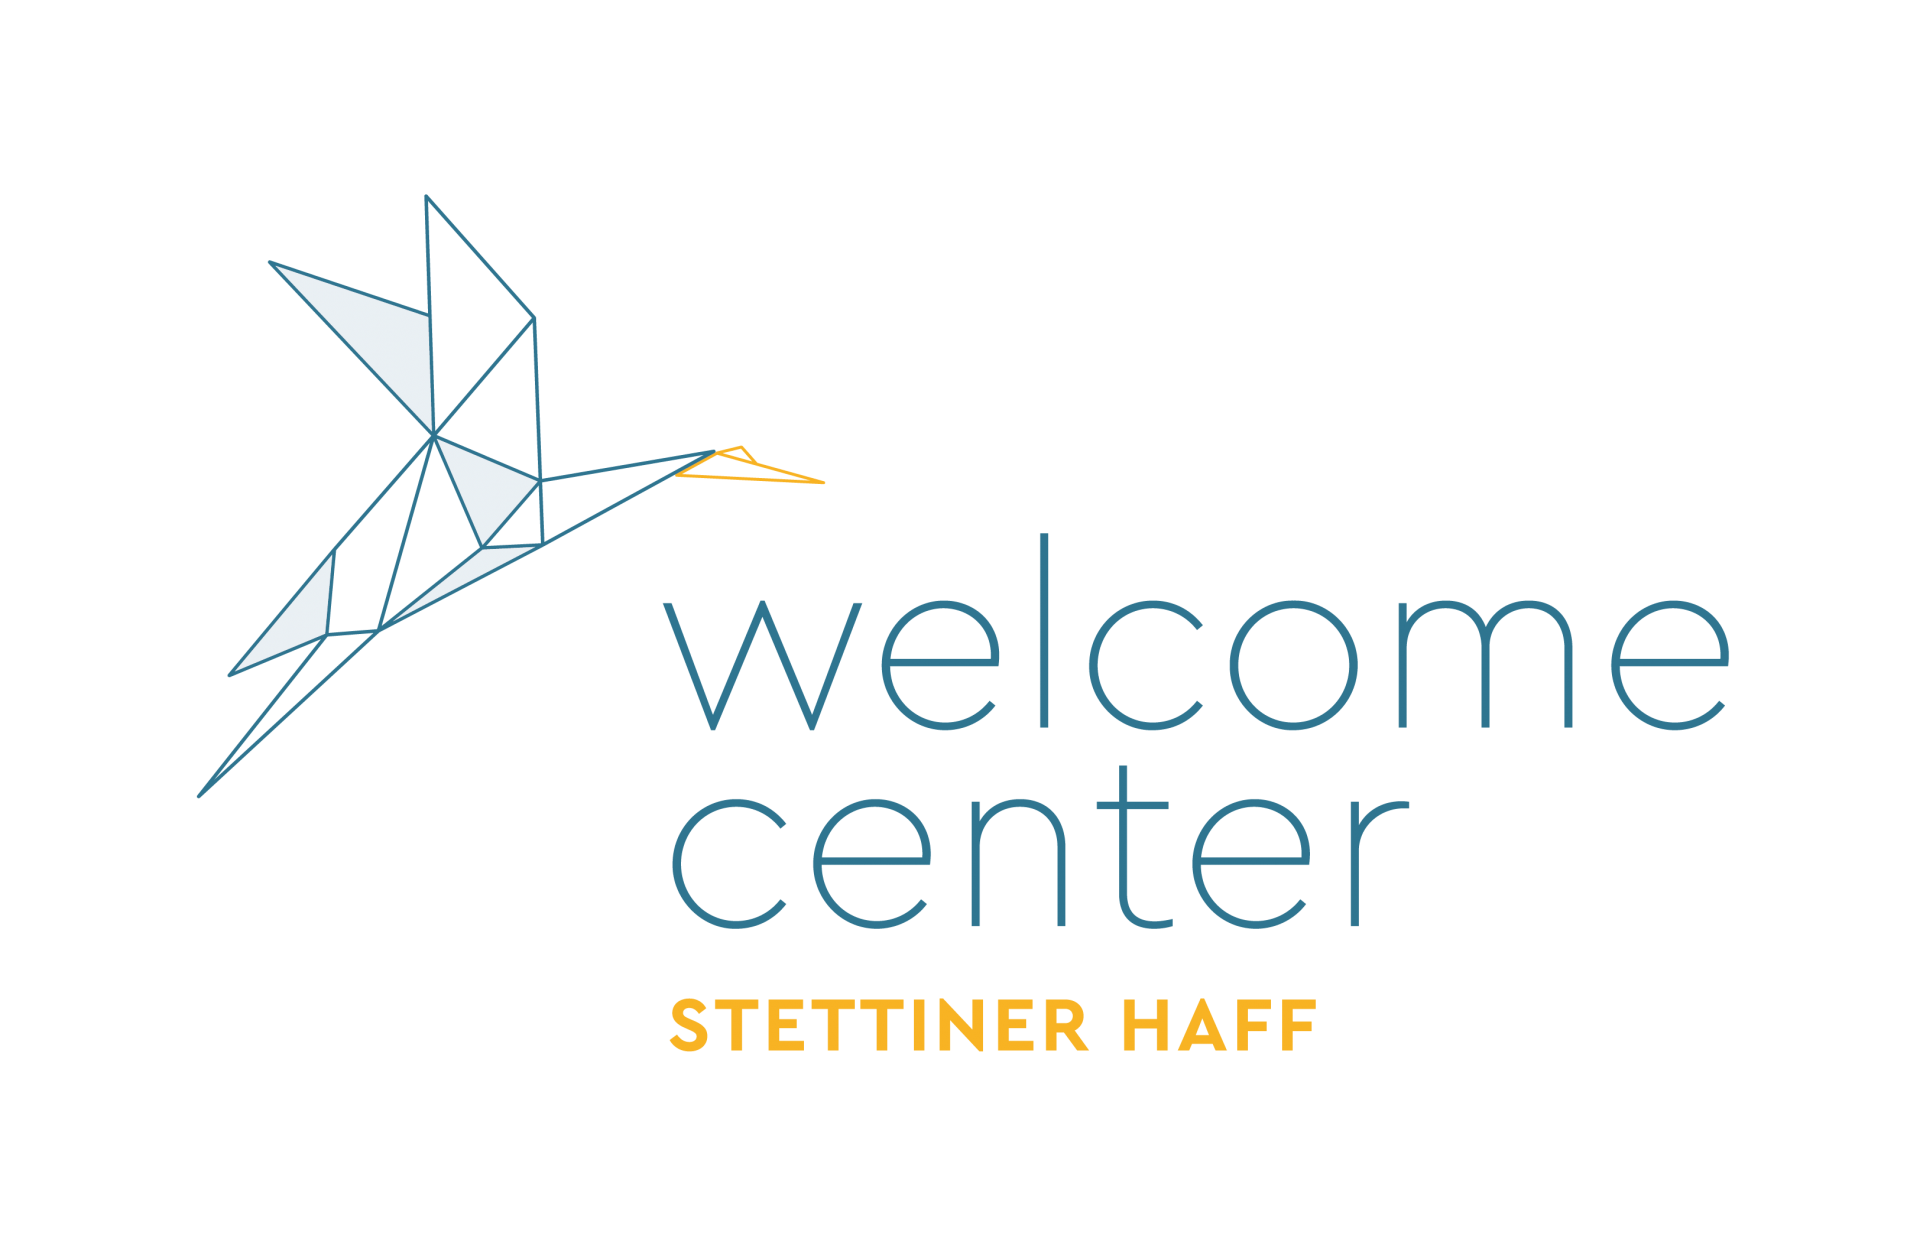 Welcome Center Stettiner Haff